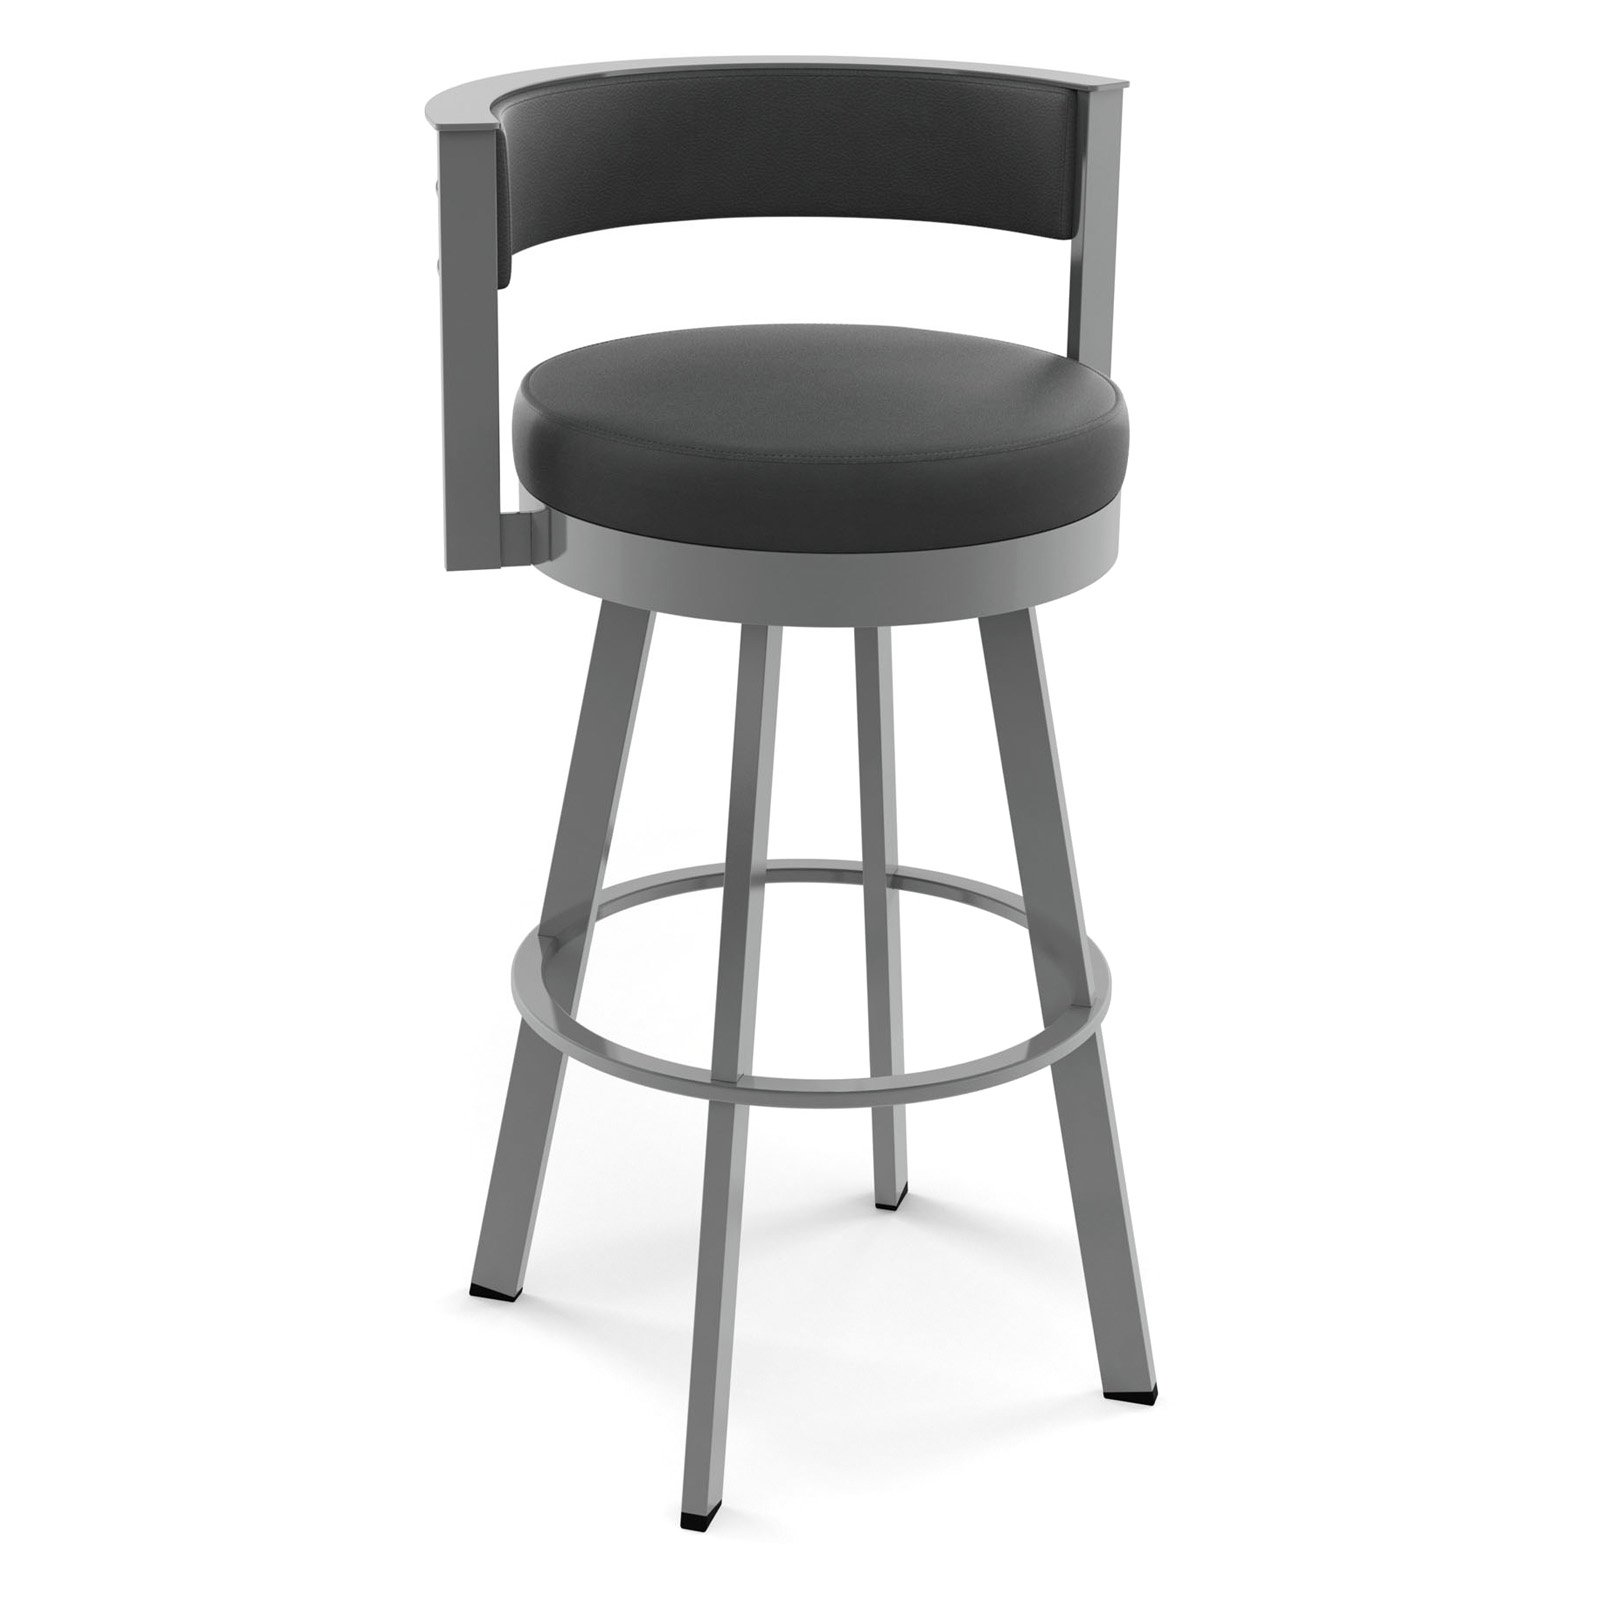 Swivel Counter Stool  sc 1 st  Walmart & Amisco Browser 26 in. Swivel Counter Stool - Walmart.com islam-shia.org